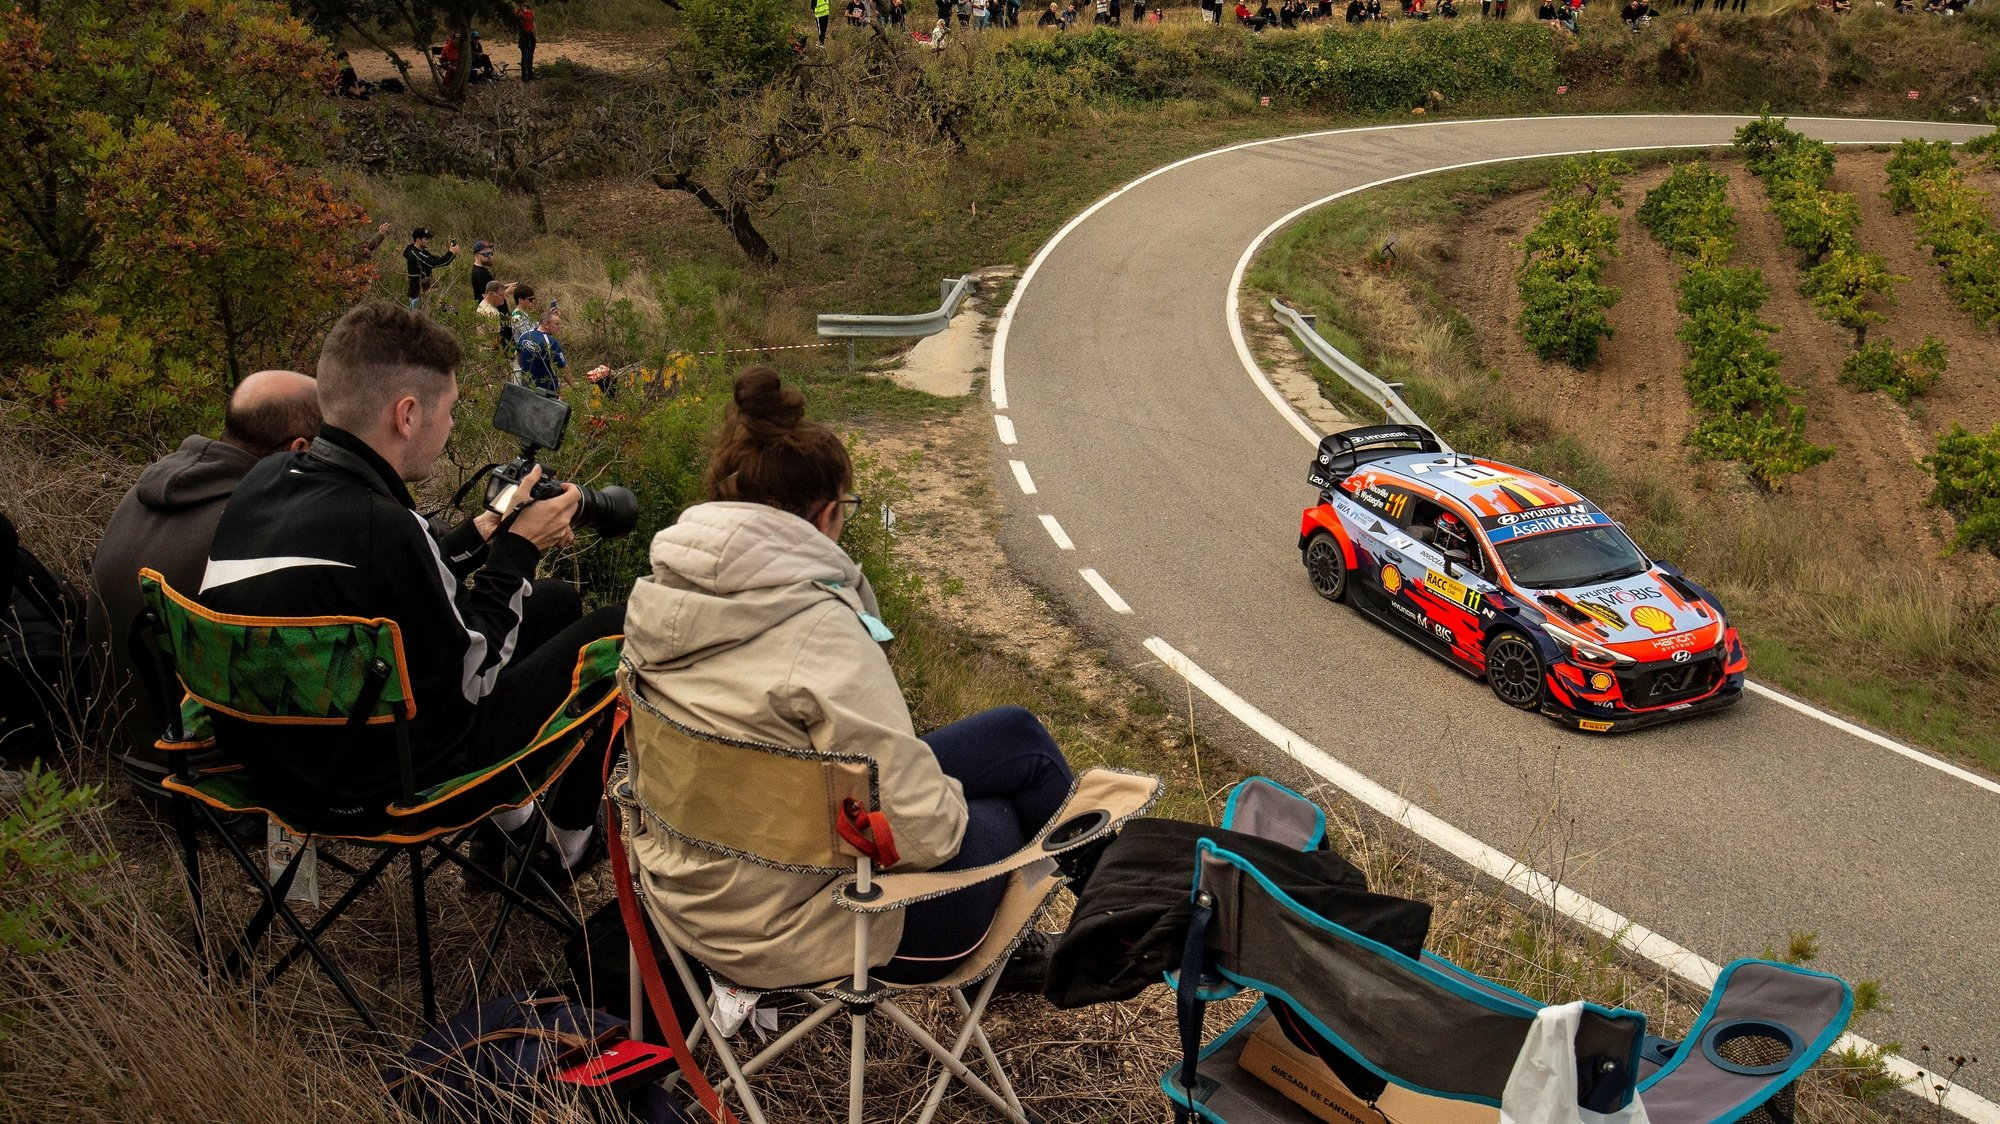 epa09526693 Belgian driver Thierry Neuville, of Hyundai team, competes in the second stage of RACC Rally Catalonia–Costa Daurada as part of the 2021 World Rally Championship (WRC), in Tarragona, northeastern Spain, 16 October 2021.  EPA/Enric Fontcuberta